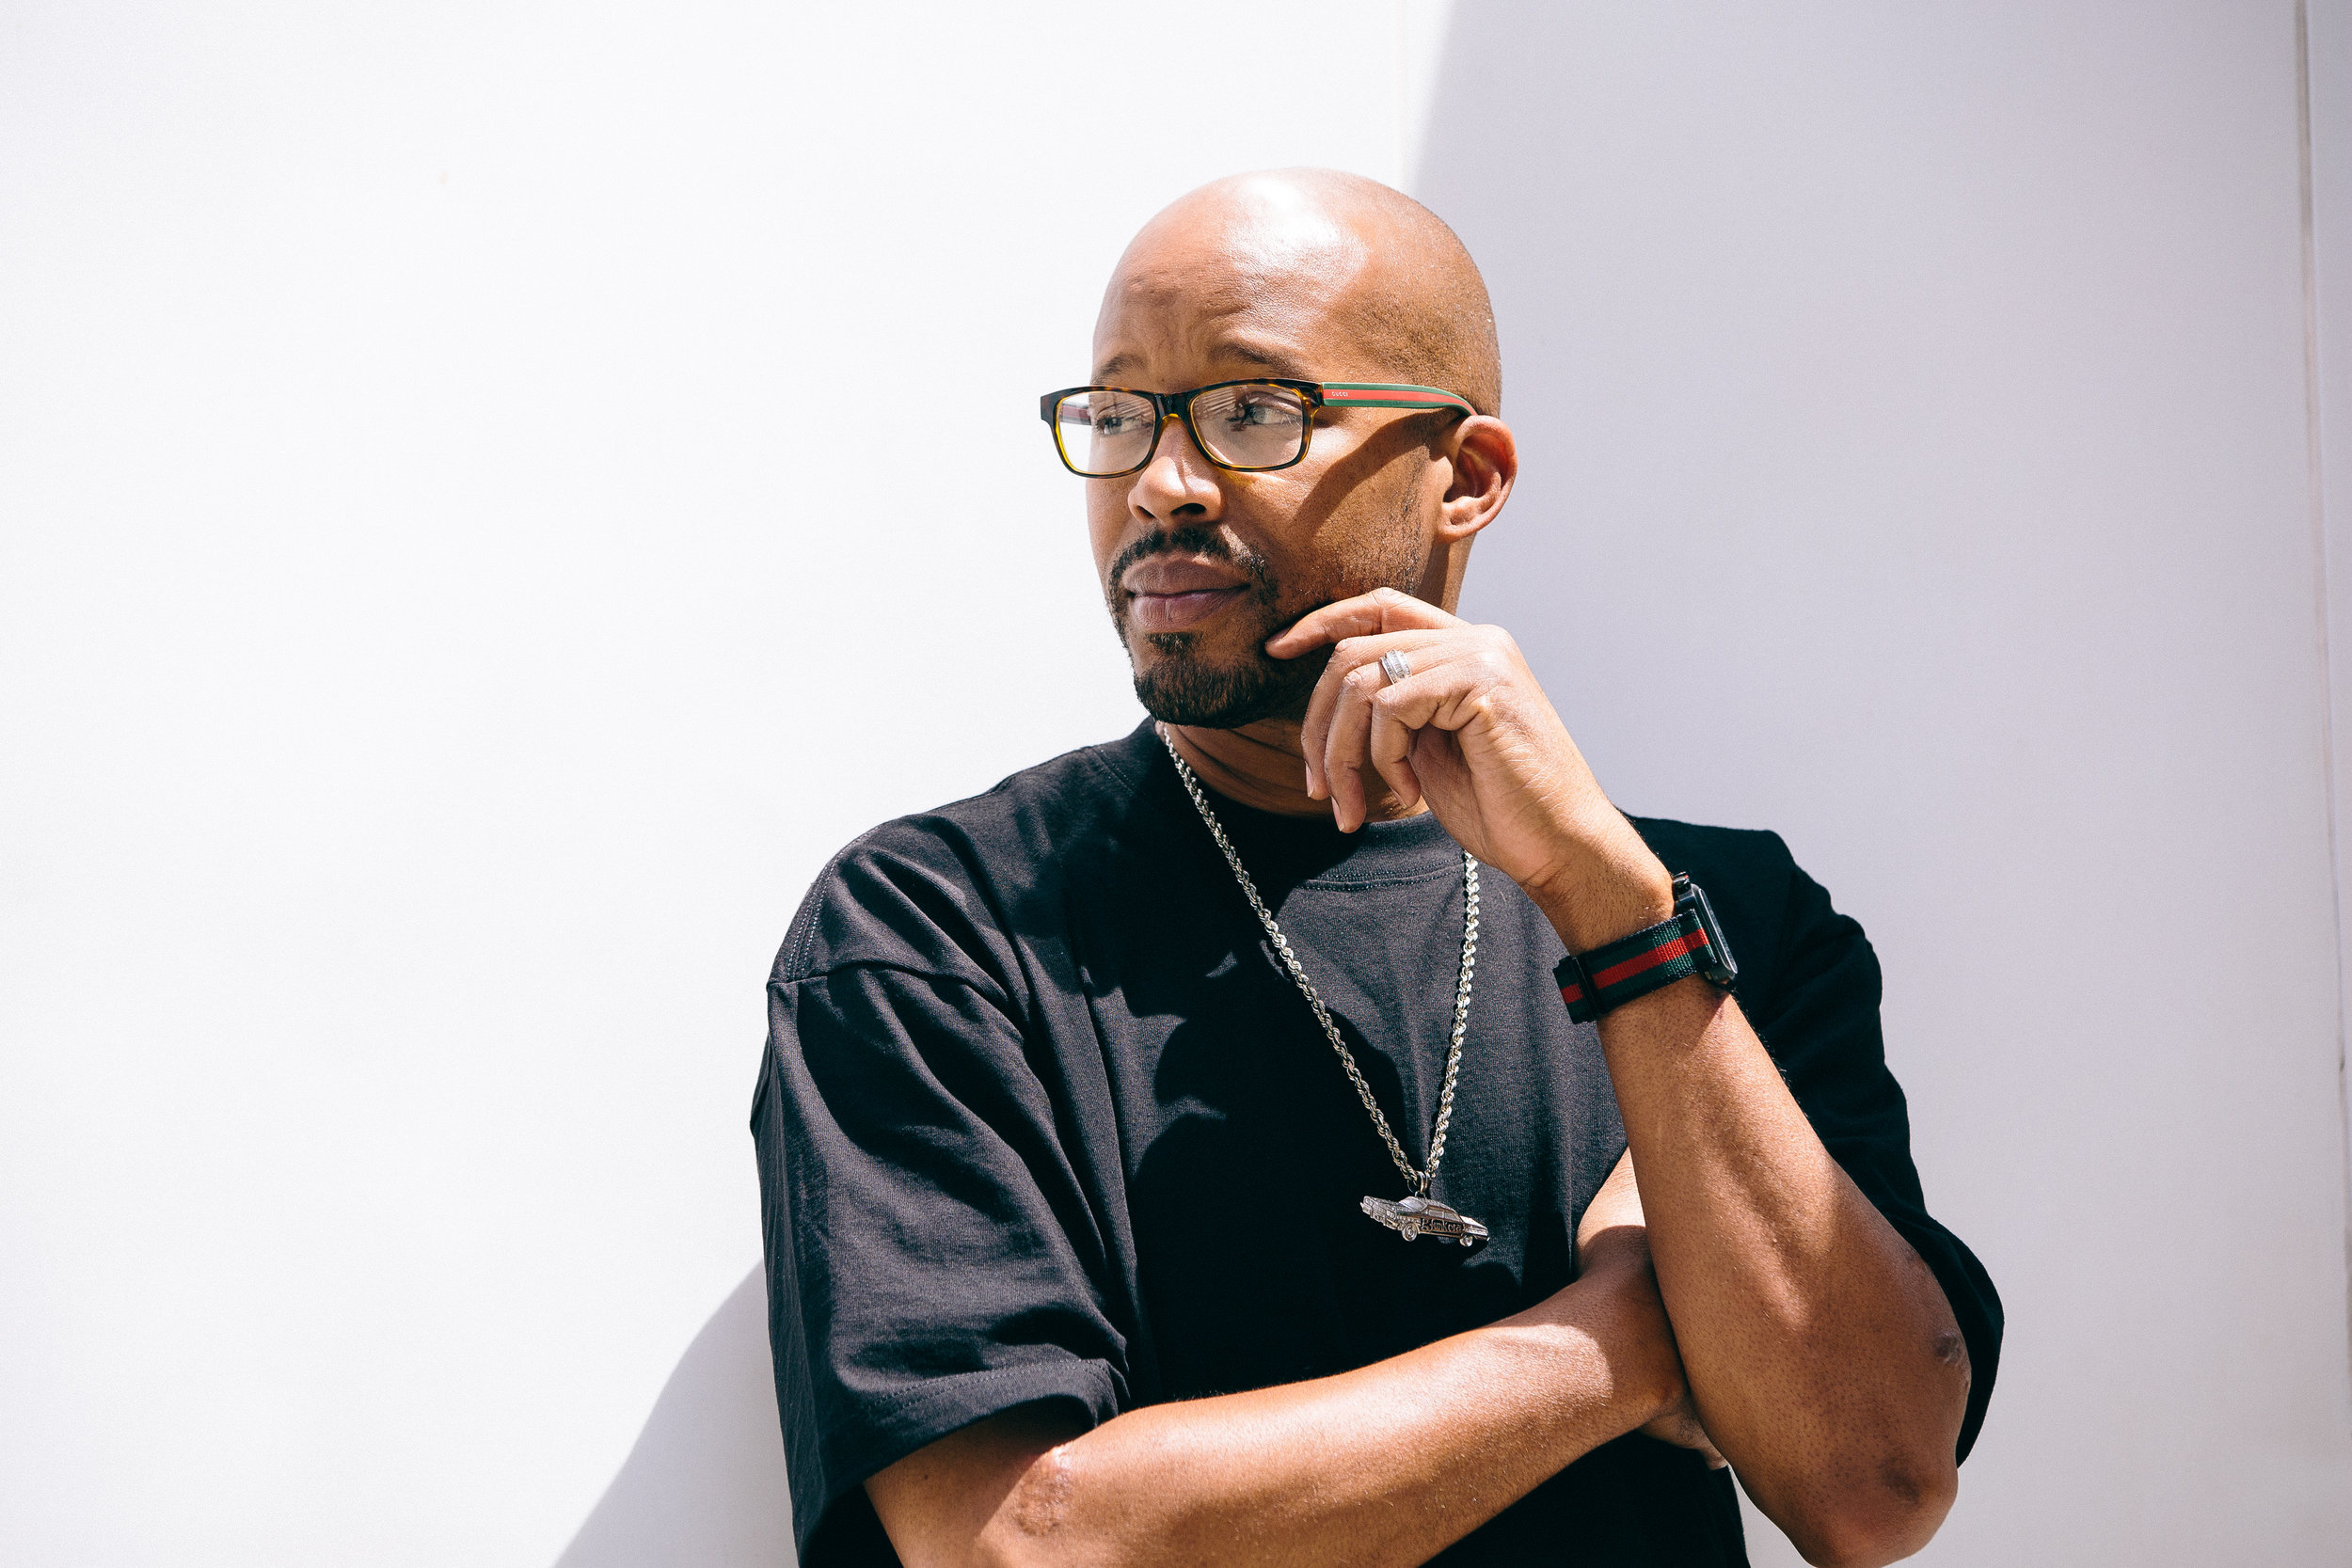 warren g for bevel